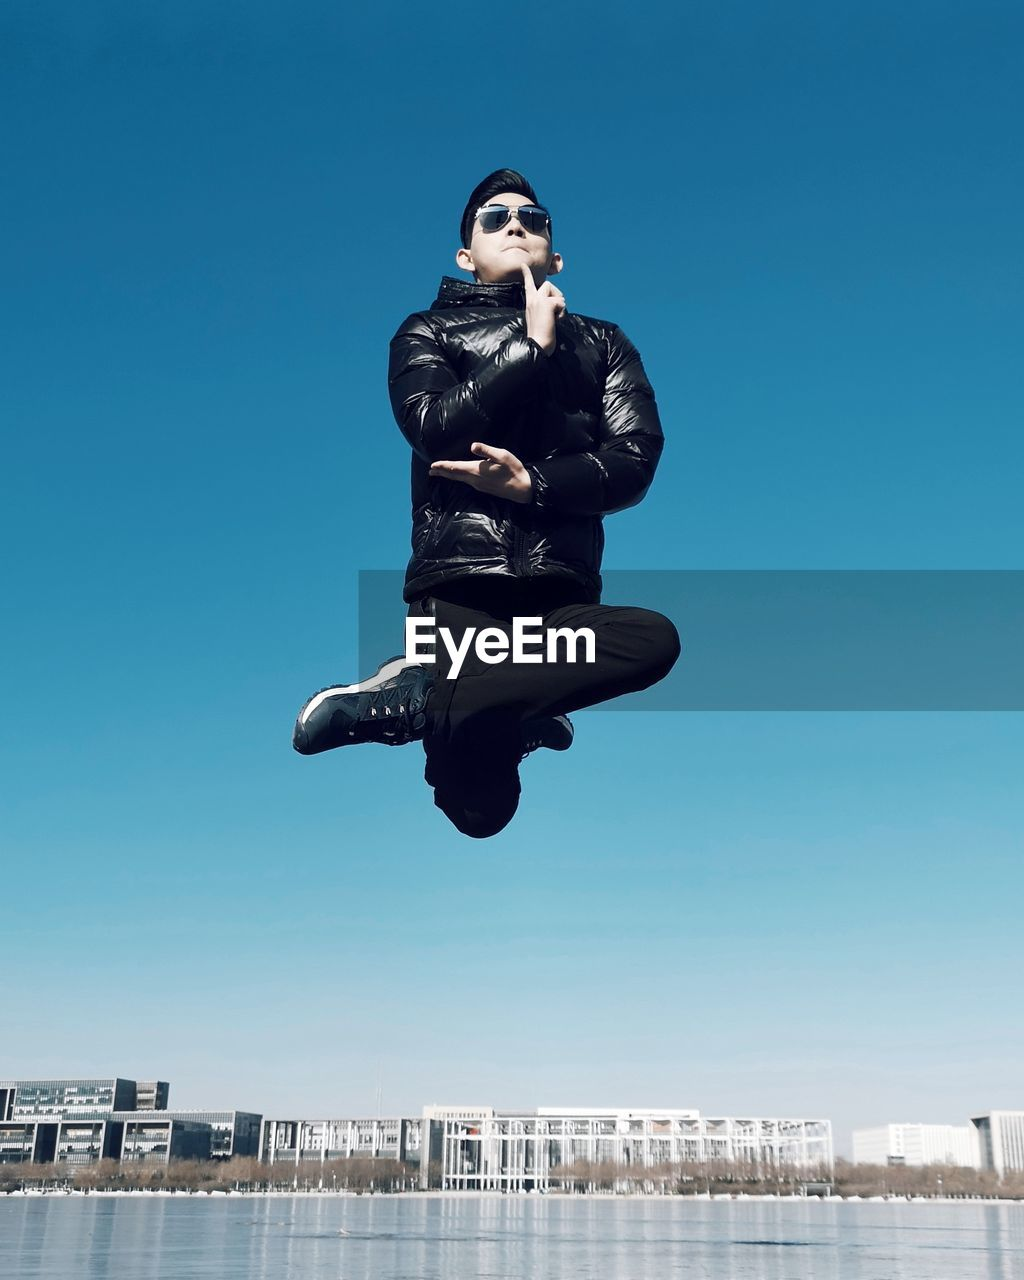 Fashionable man in mid-air over lake against sky in city